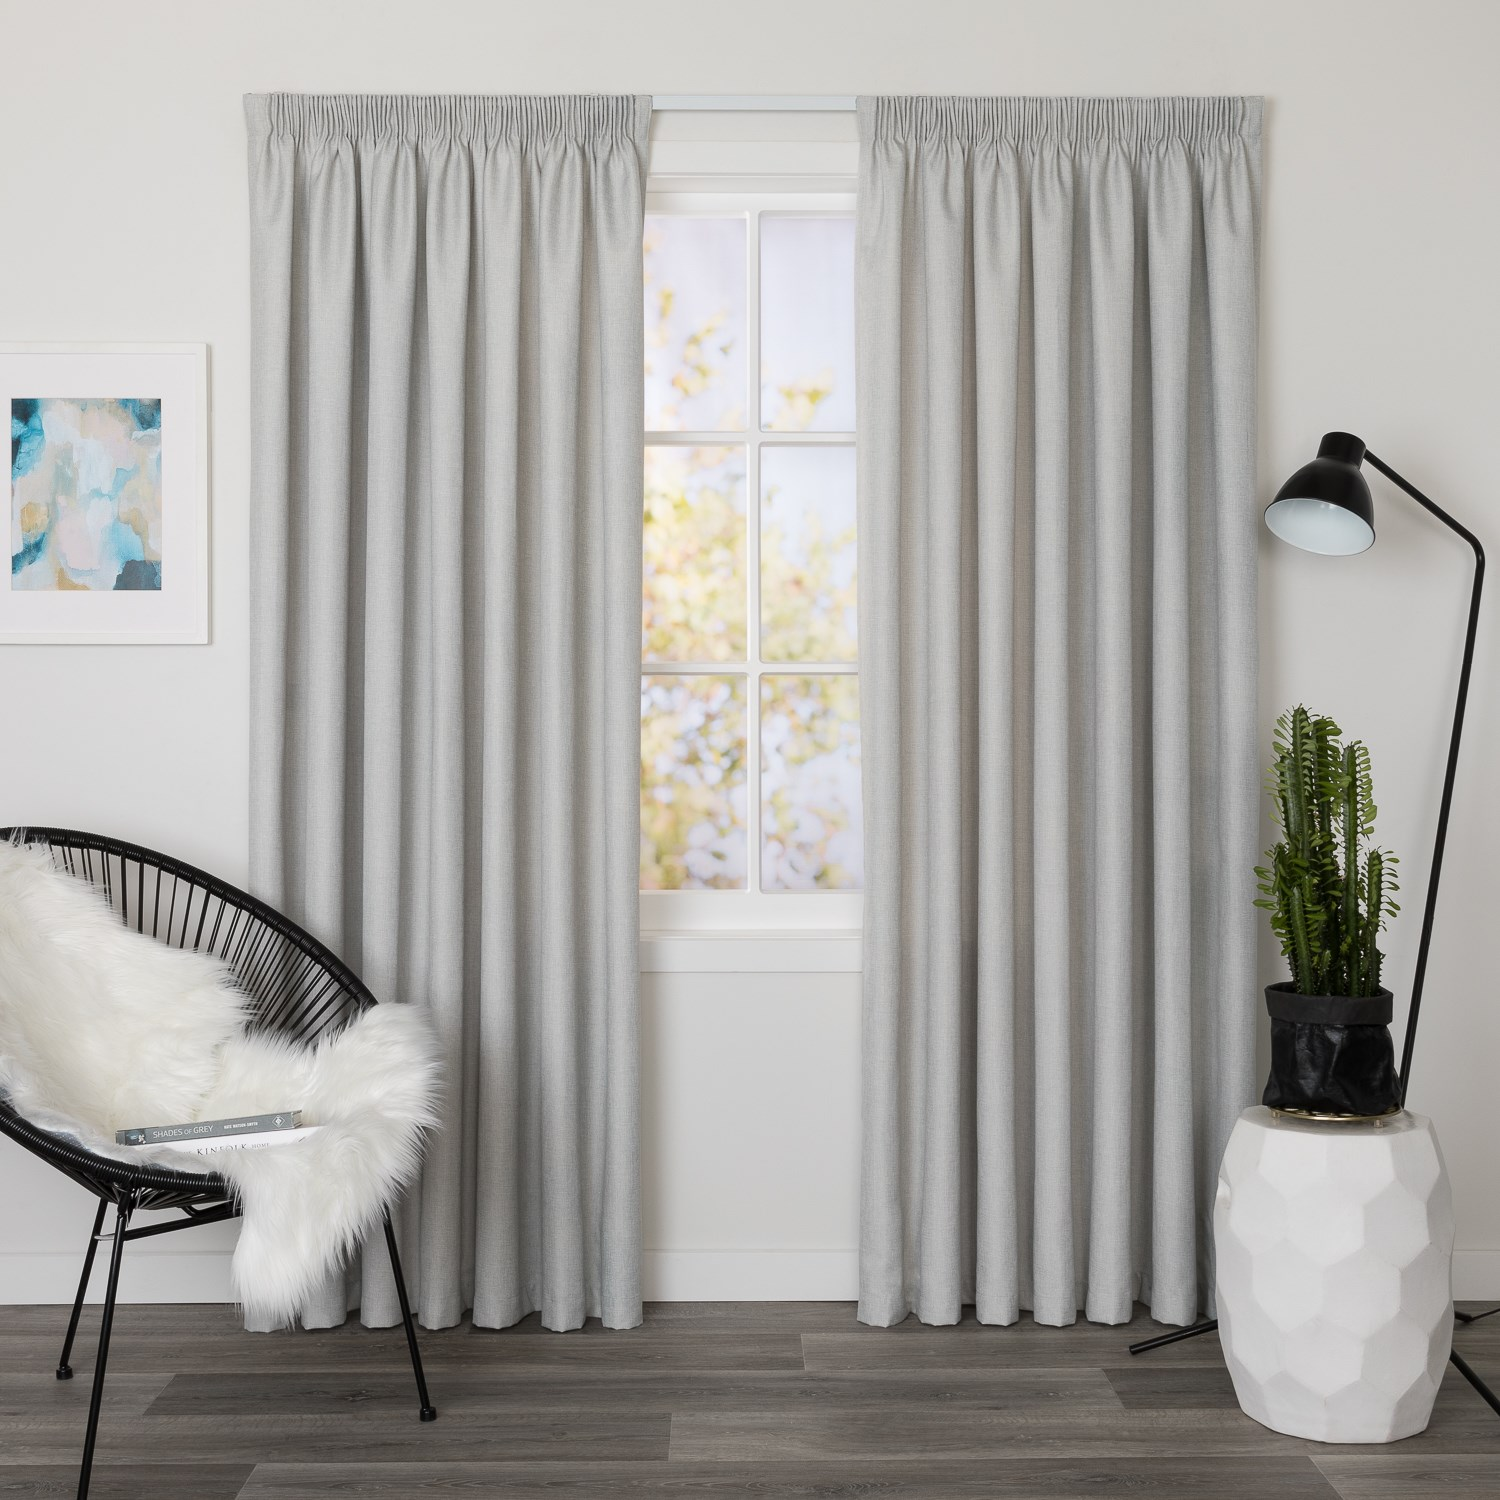 Bentley Stone - Readymade Thermal Pencil Pleat Curtain